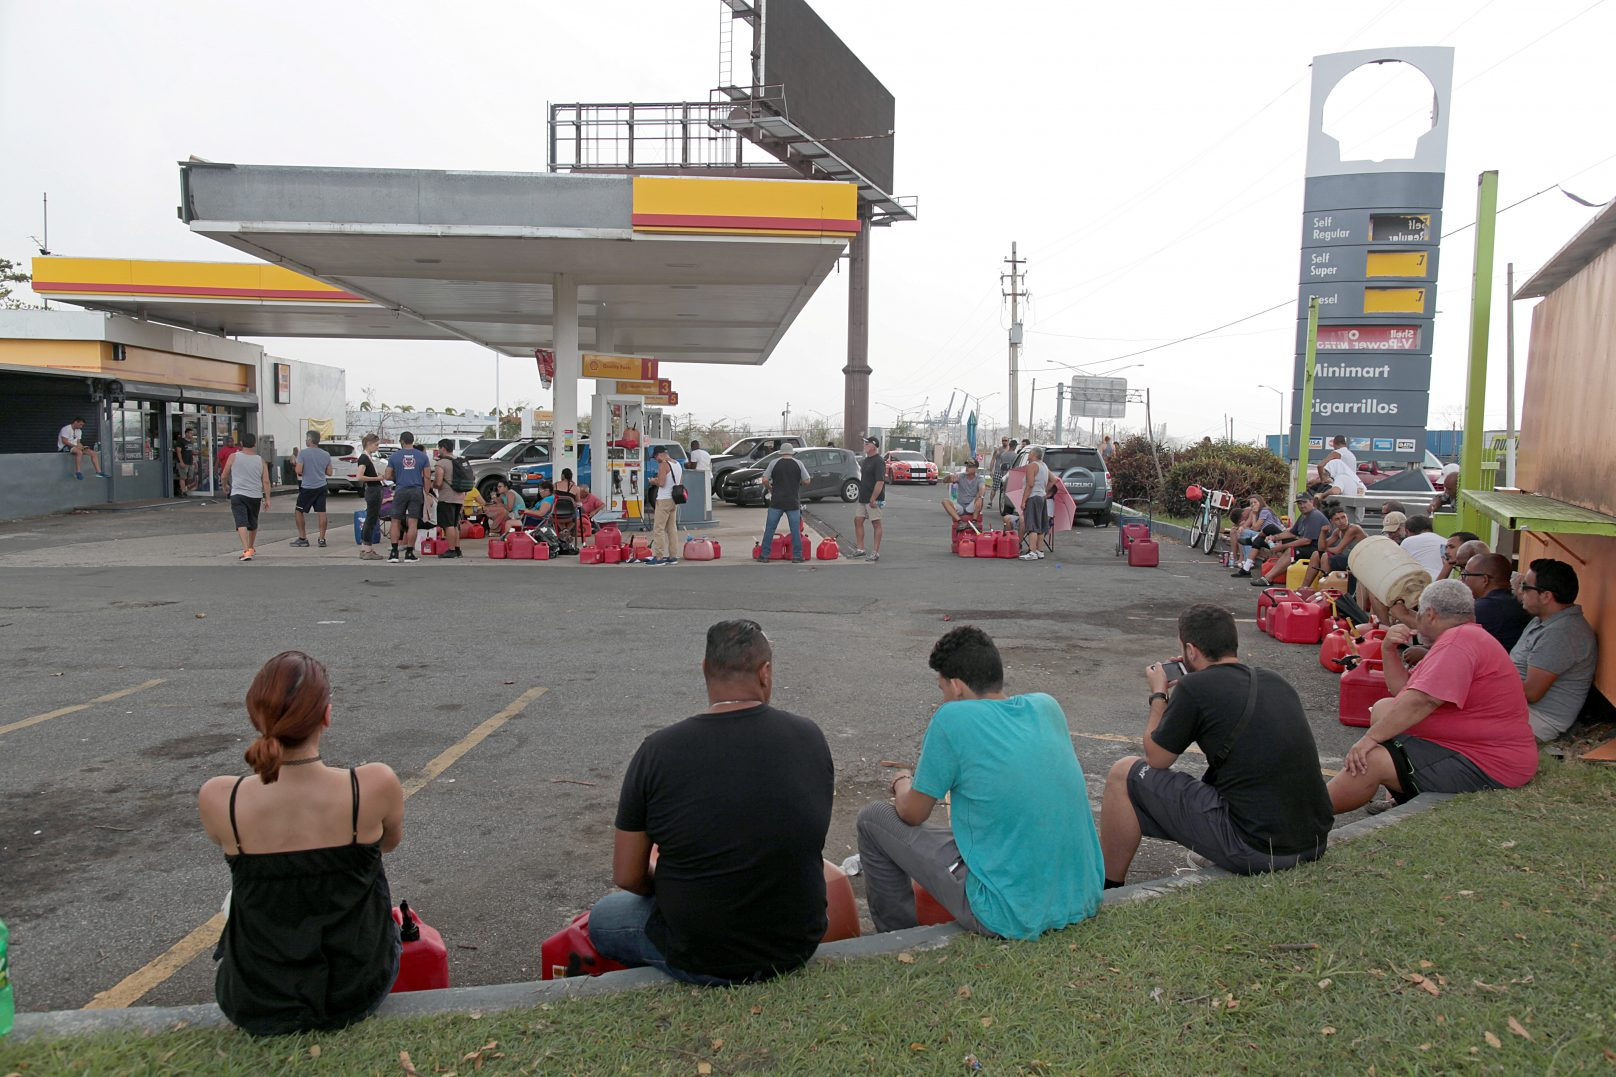 People wait at a gas station to fill up their fuel containers, in the aftermath of Hurricane Maria, in San Juan